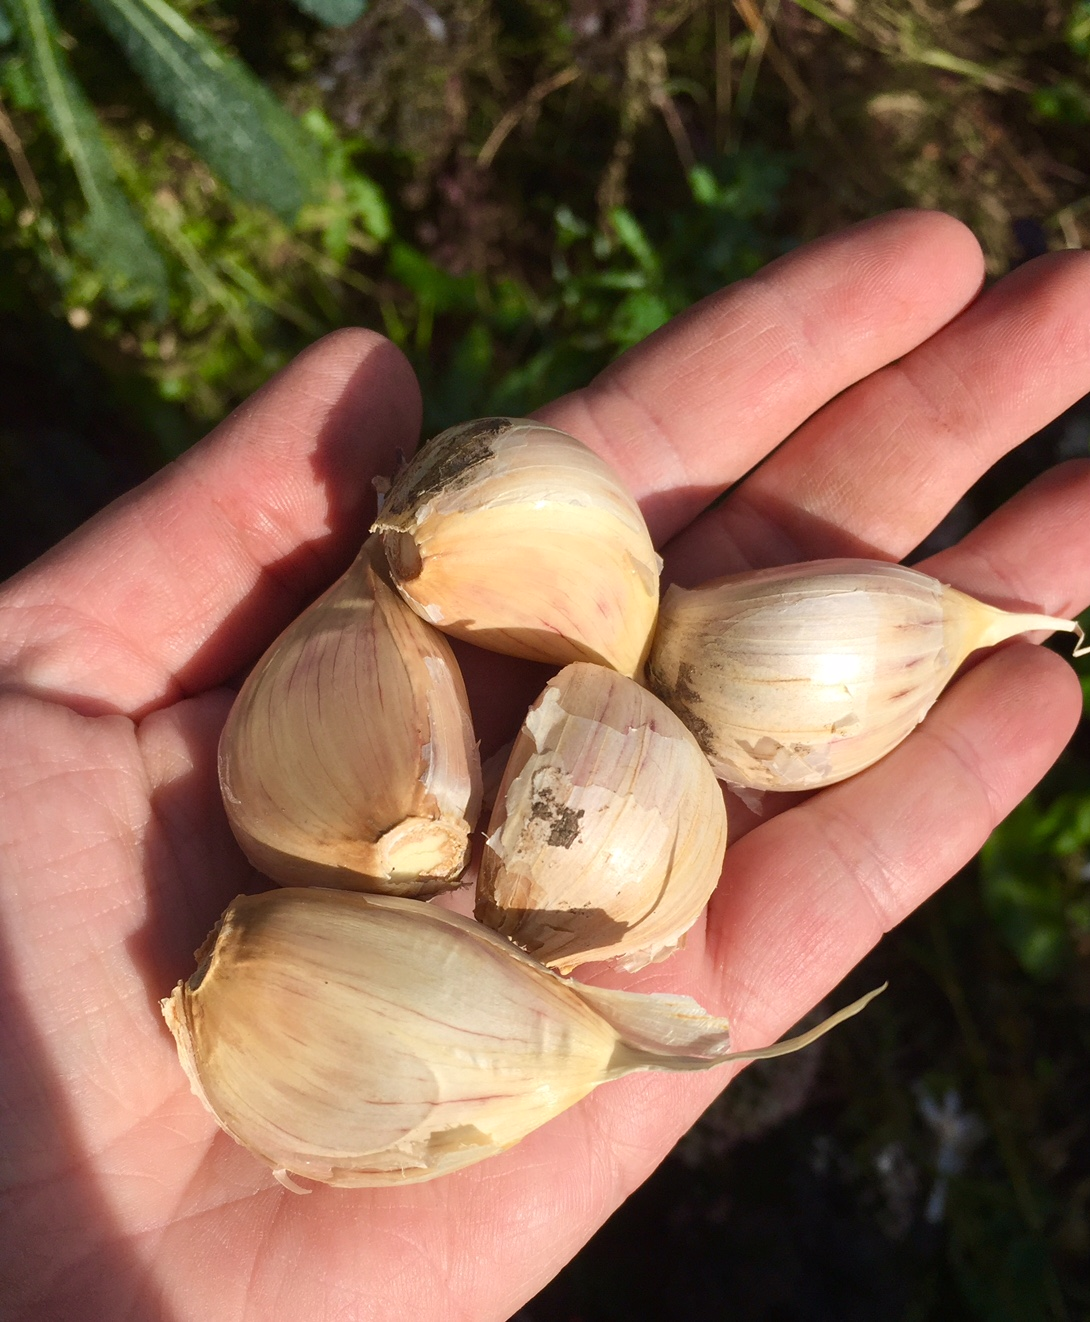 Planting Pink Music Garlic, Homestead Monthly: October 2016 {shiitakes, rare apples, and an unfortunate honey harvest} | Whole-Fed Homestead